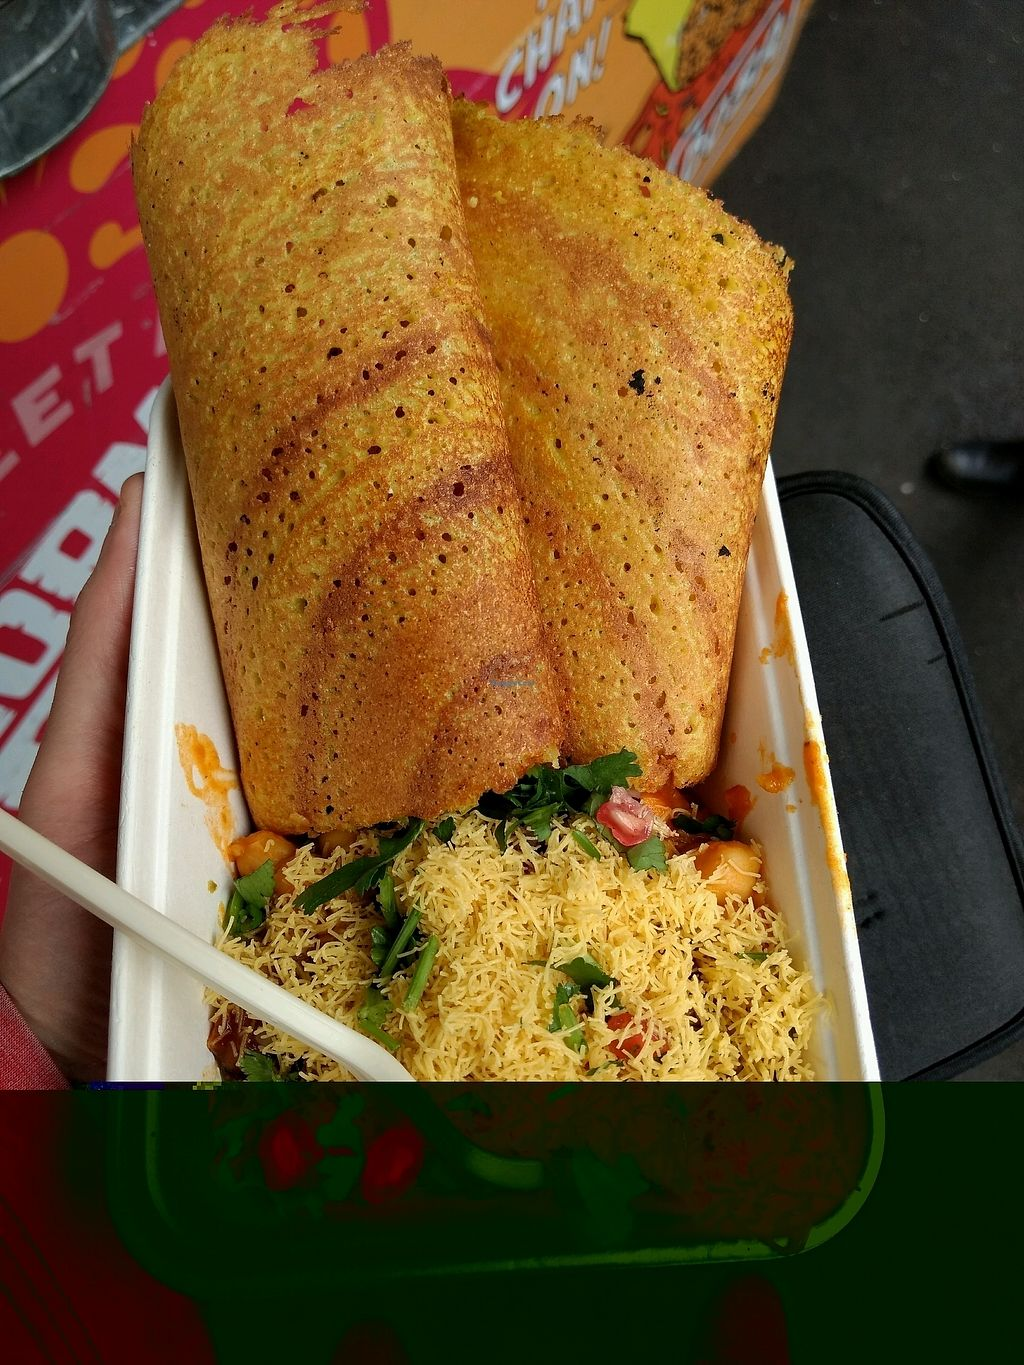 """Photo of Horn Ok Please - Food Stall  by <a href=""""/members/profile/craigmc"""">craigmc</a> <br/>dosa <br/> October 17, 2017  - <a href='/contact/abuse/image/59959/316165'>Report</a>"""